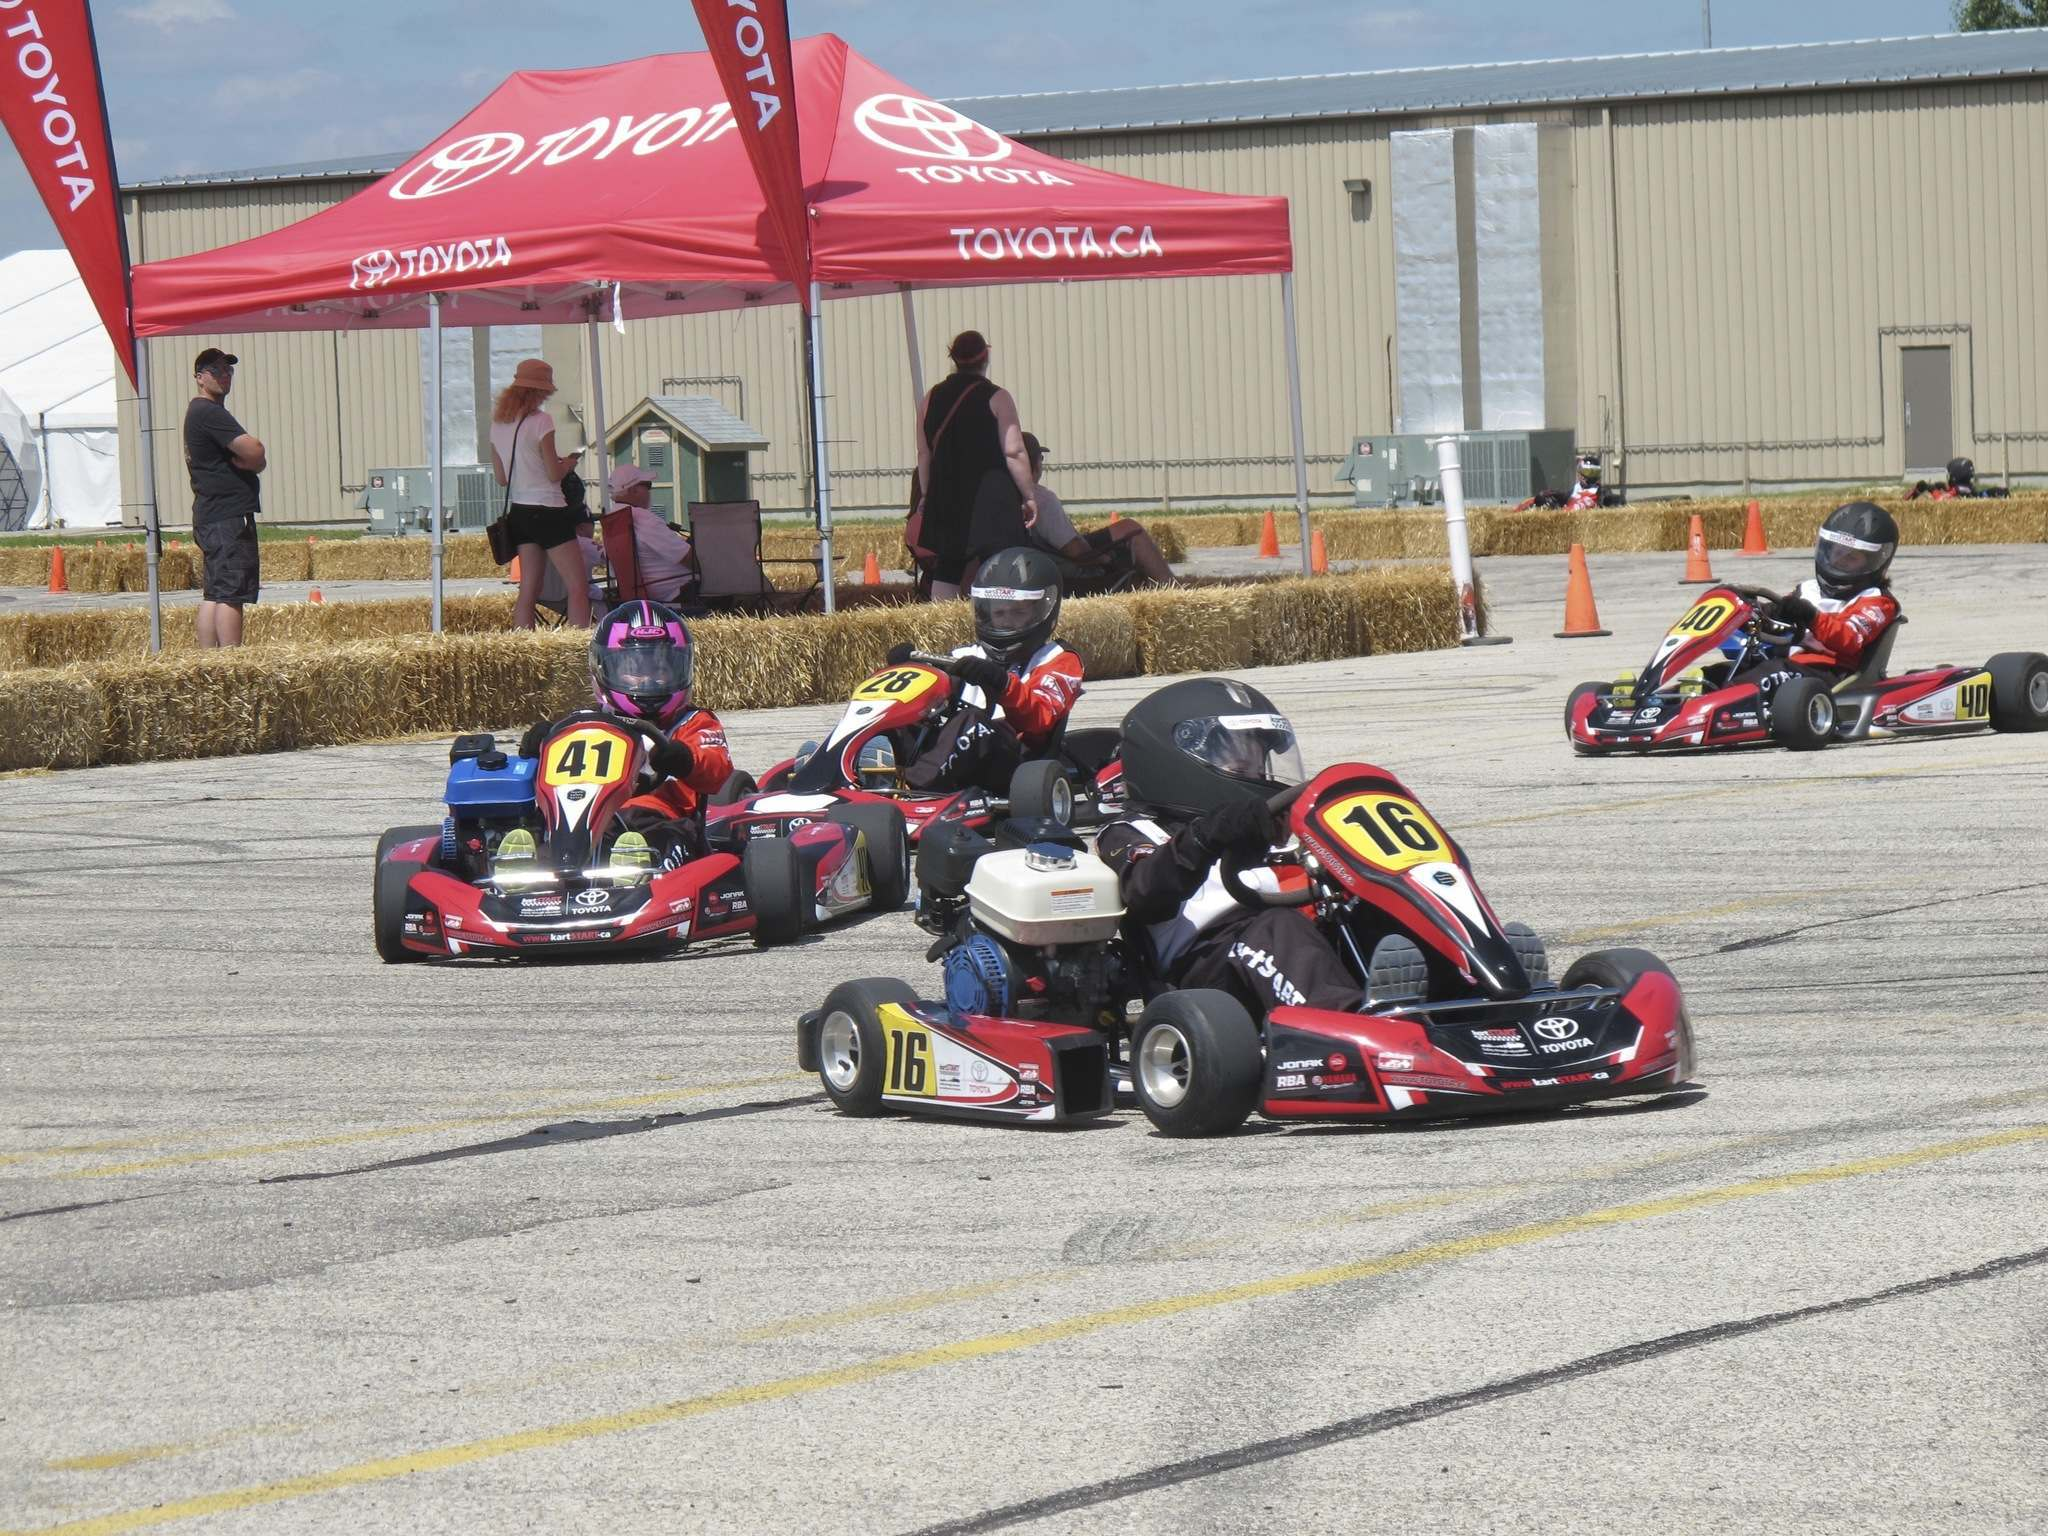 Willy Williamson / Winnipeg Free Press files The popular kartSTART learn-to-drive program is returning for more laps around the Red River Exhibition grounds. The Toyota-sponsored program provides kids 10 and older with driving experience in go-karts.